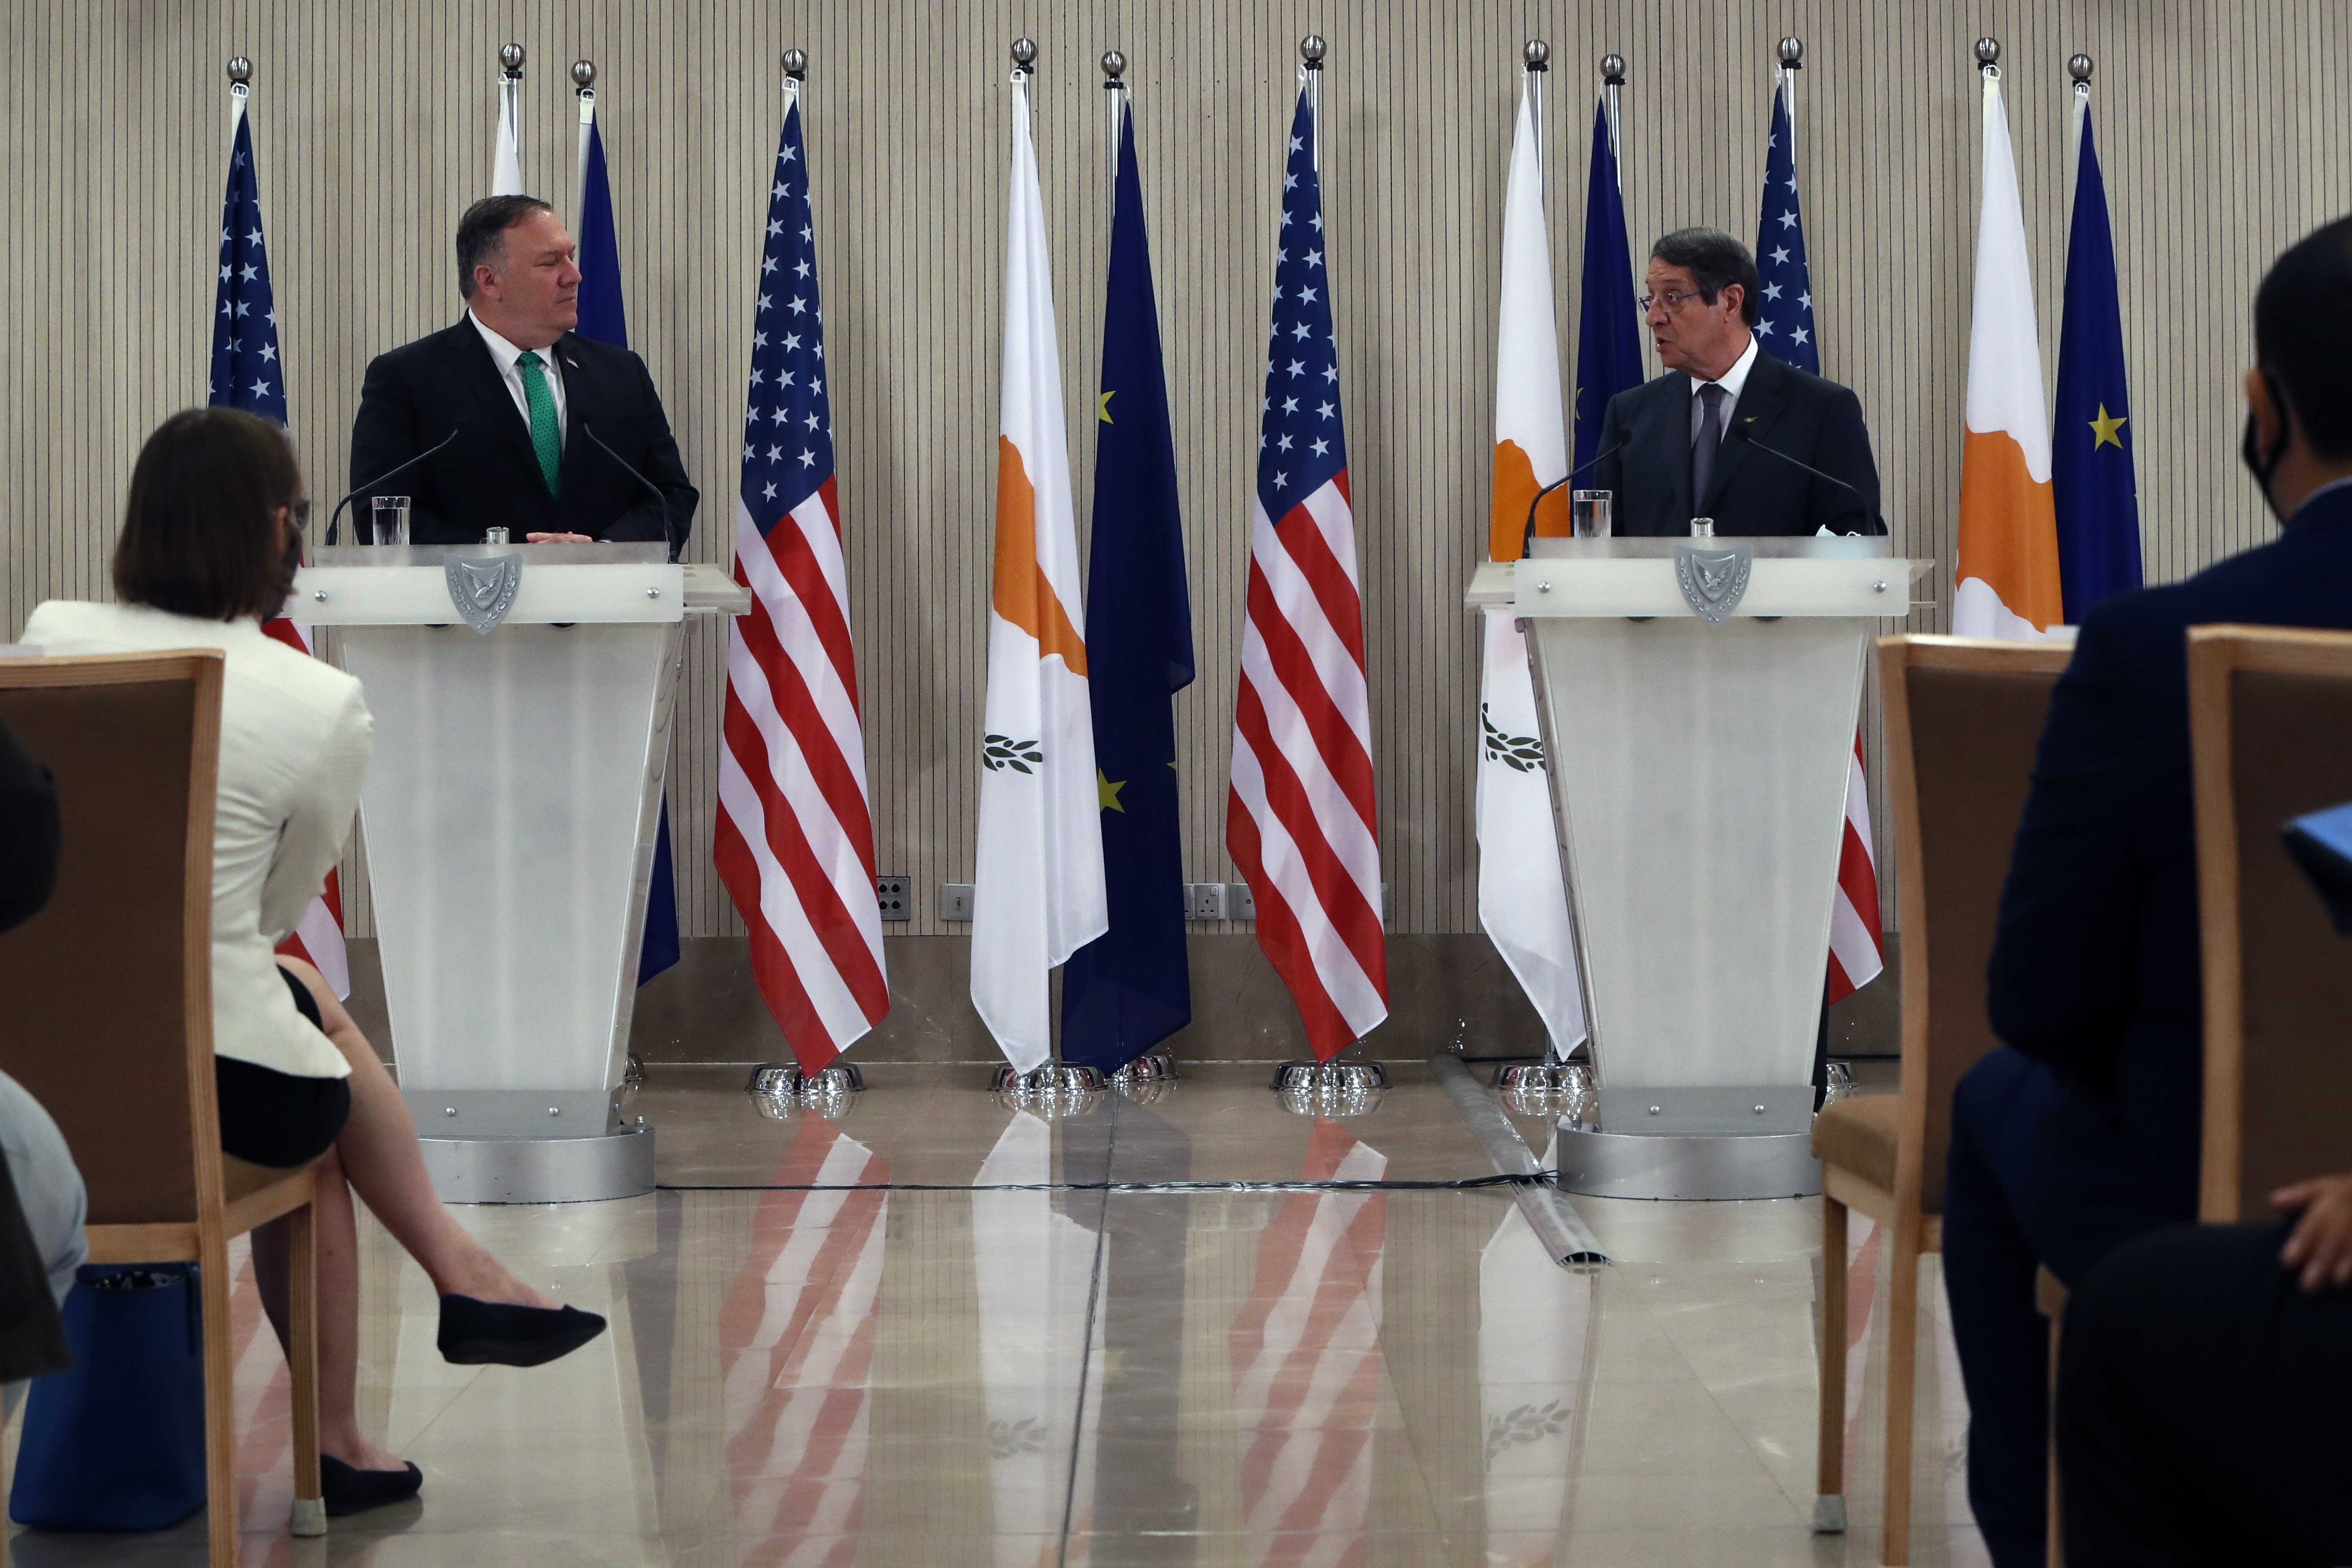 U.S. Secretary of State Mike Pompeo, left, Cypriot President Nicos Anastasiades make statements during a press conference at the Presidential Palace in Nicosia, Cyprus, Saturday, Sept. 12, 2020. Pompeo's lightning visit to Cyprus aimed to de-escalate a confrontation between Greece and Turkey over energy reserves in east Mediterranean waters and to affirm Washington's continued engagement in the tumultuous region four days after Russian Foreign Minister Sergey Lavrov pitched Moscow's offer to help ease tensions during his trip to the island nation. (AP Photo/Petros Karadjias, Pool)